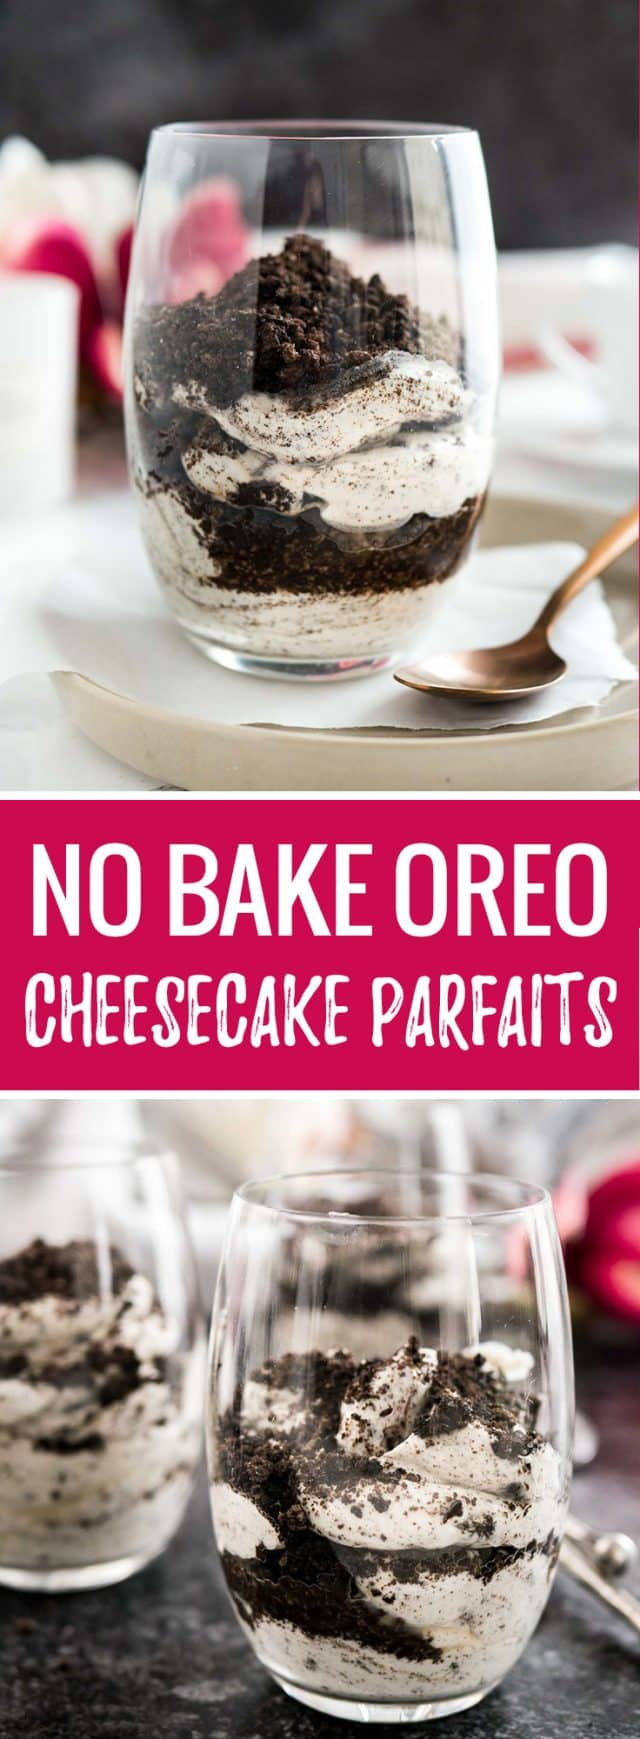 These No Bake Oreo Cheesecake Parfaits are super simple to make with no baking involved! A delicious cookies-and-cream dessert that is fast, easy, and foolproof. Perfect for any time of the year!